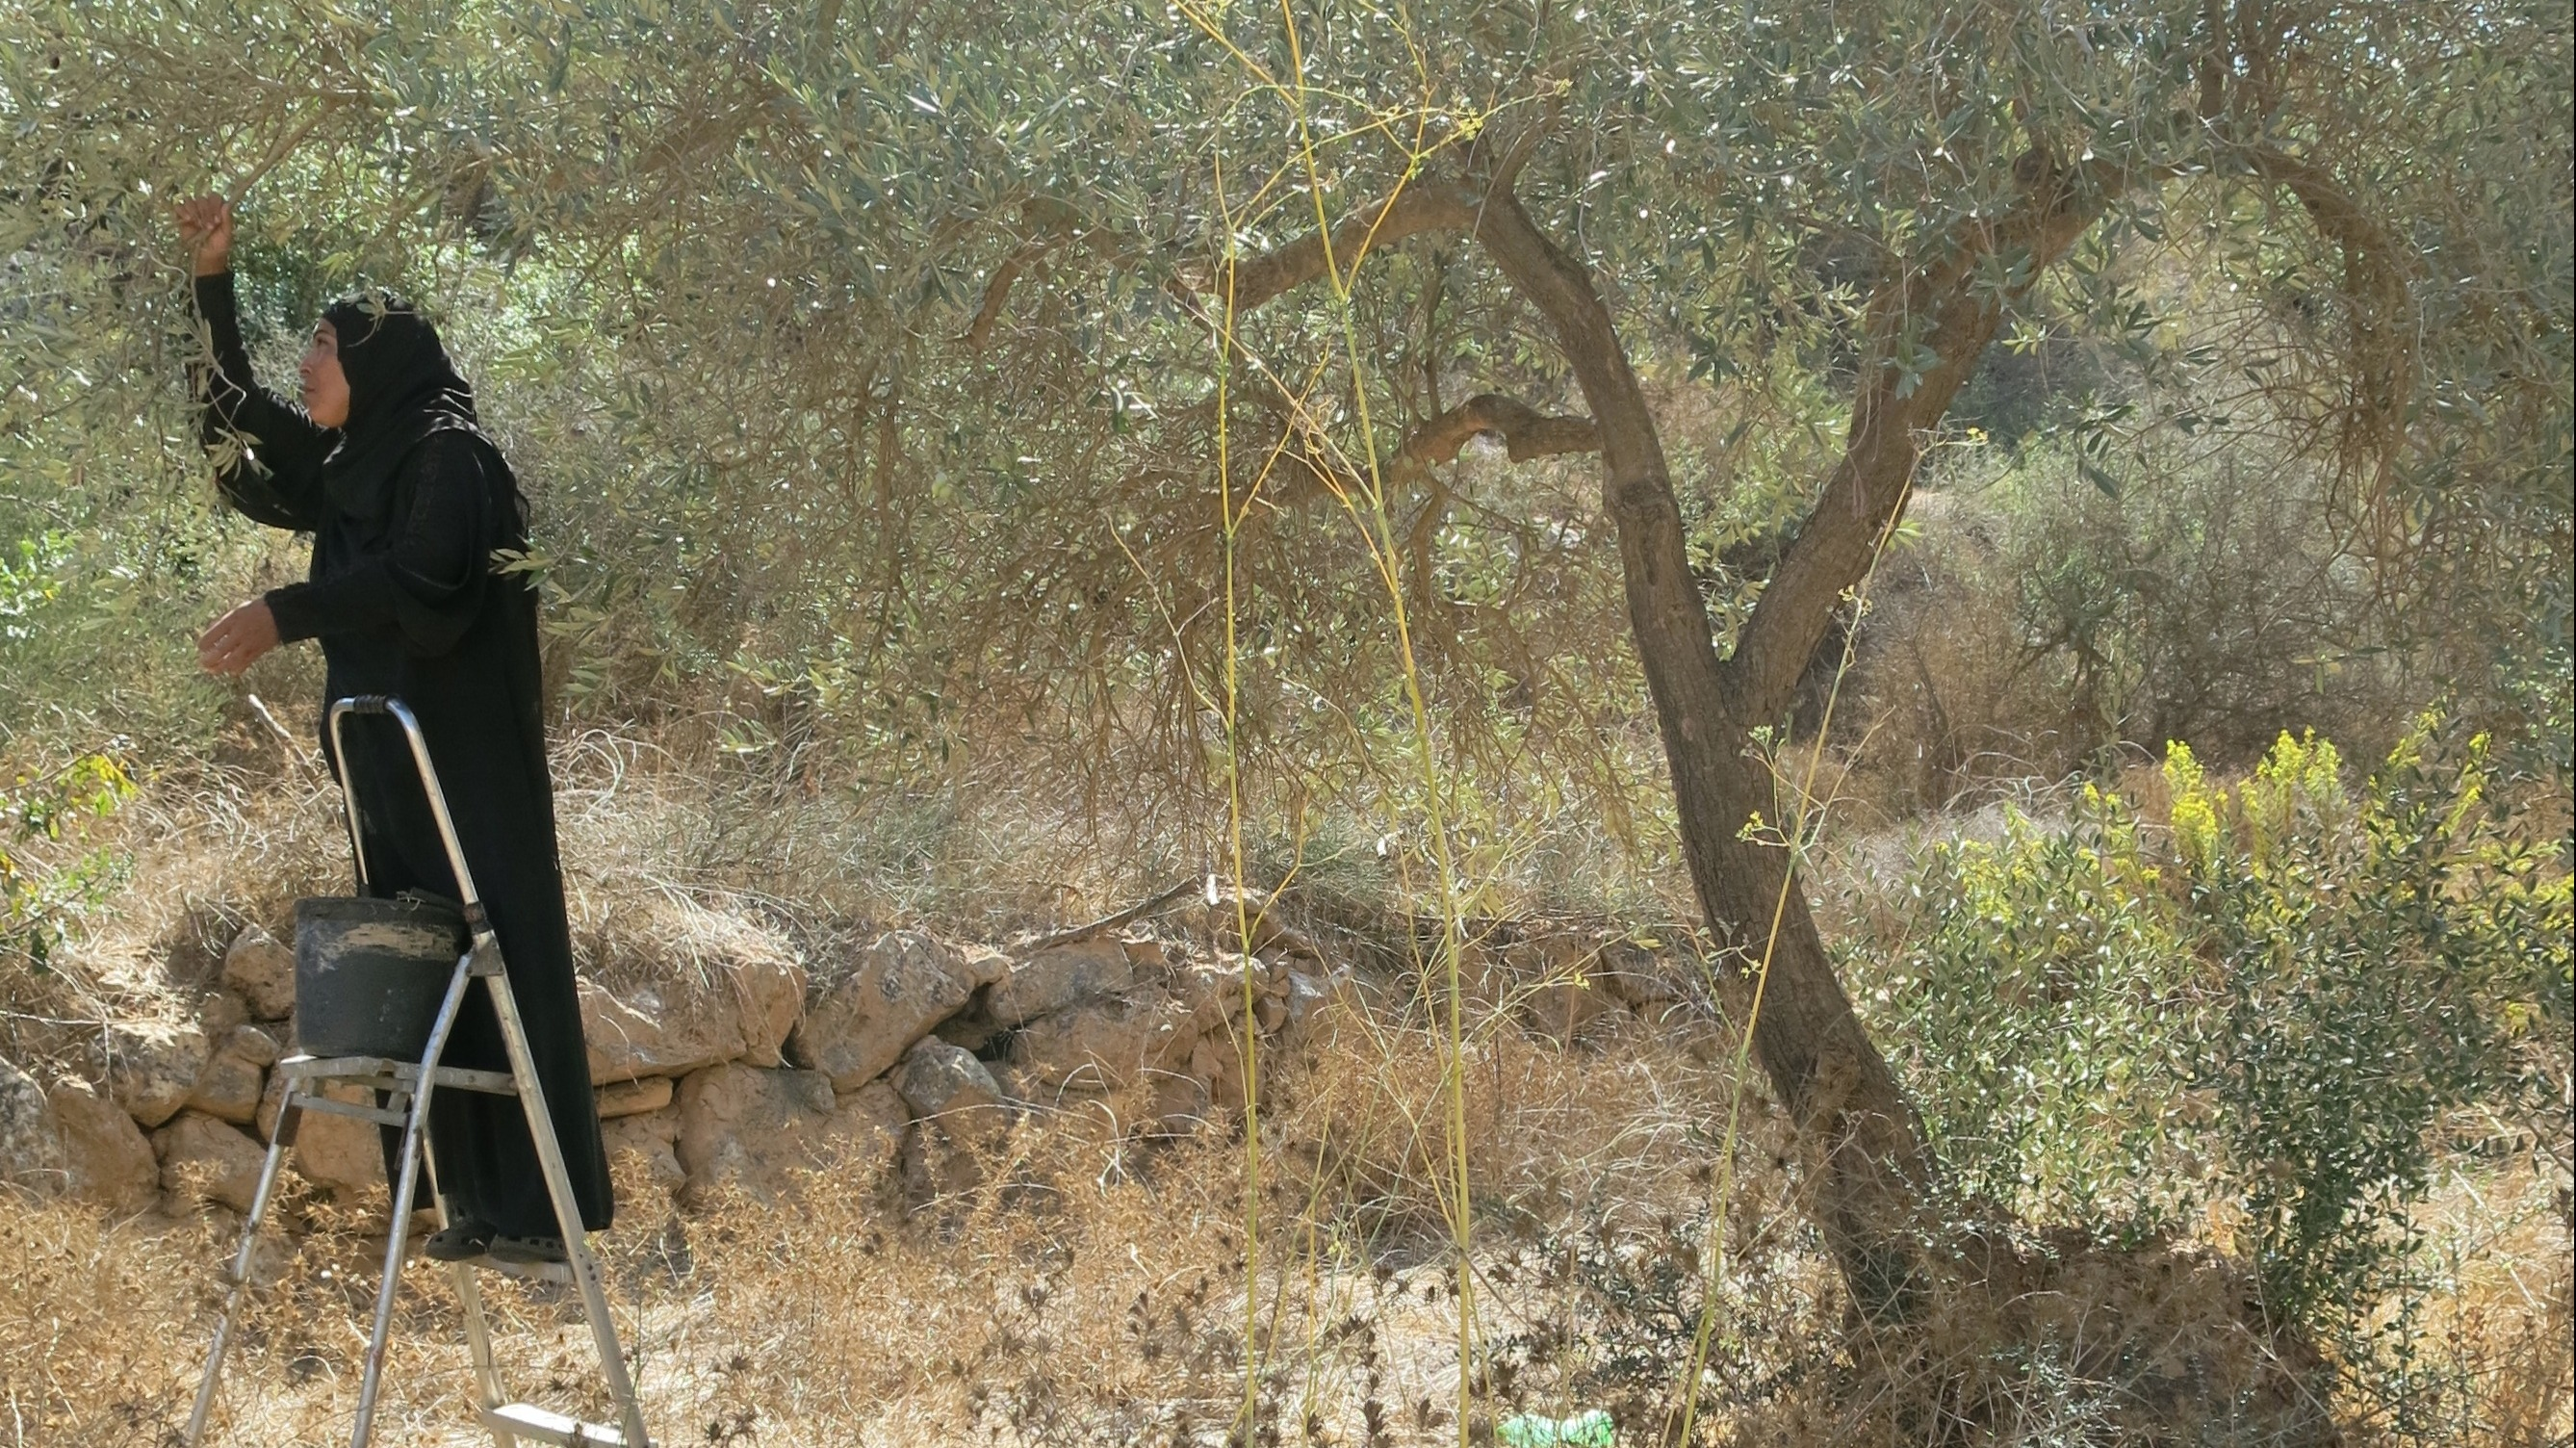 Palestinian olive pickers are often attacked by Israeli settlers. Yet some Israelis work with Palestinians to protect them and help them pick the harvests.